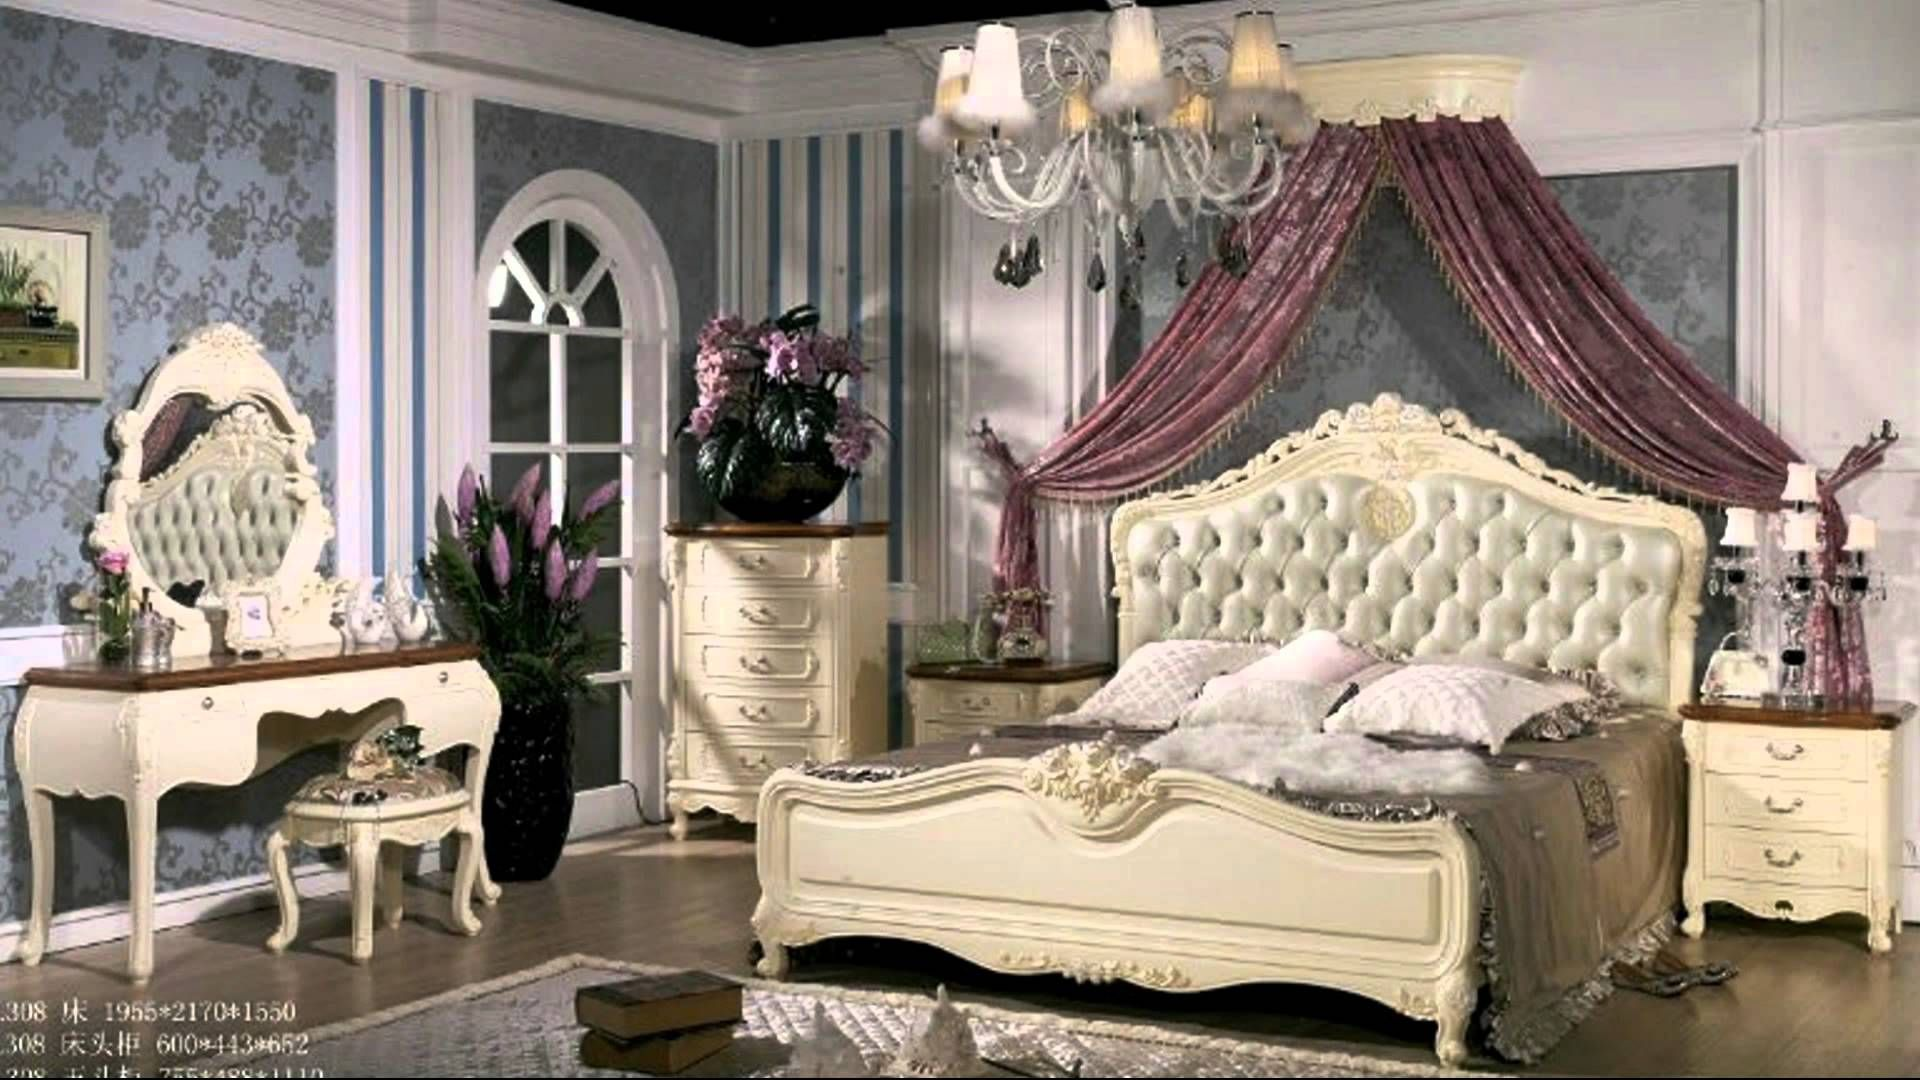 Zimmer im traditionellen stil french style bedroom ideas  from darkness comes light  pinterest